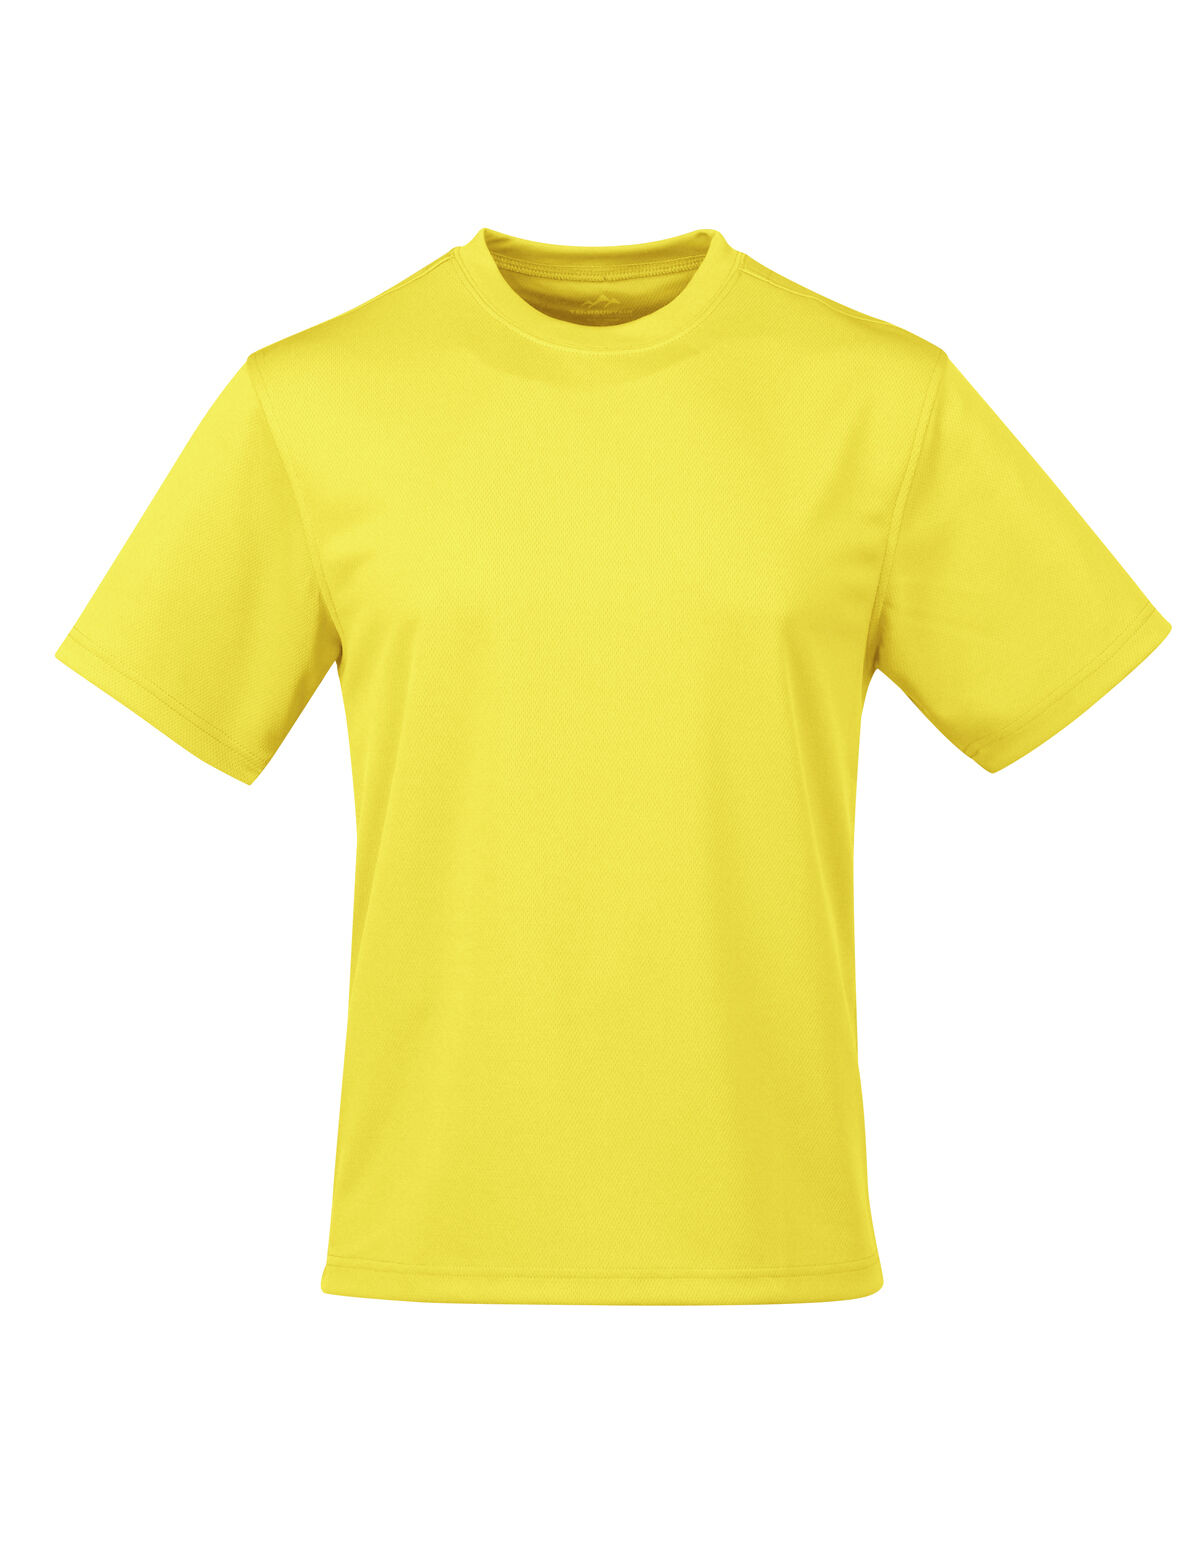 Performance t shirt in tall sizing for Mens xlt t shirts